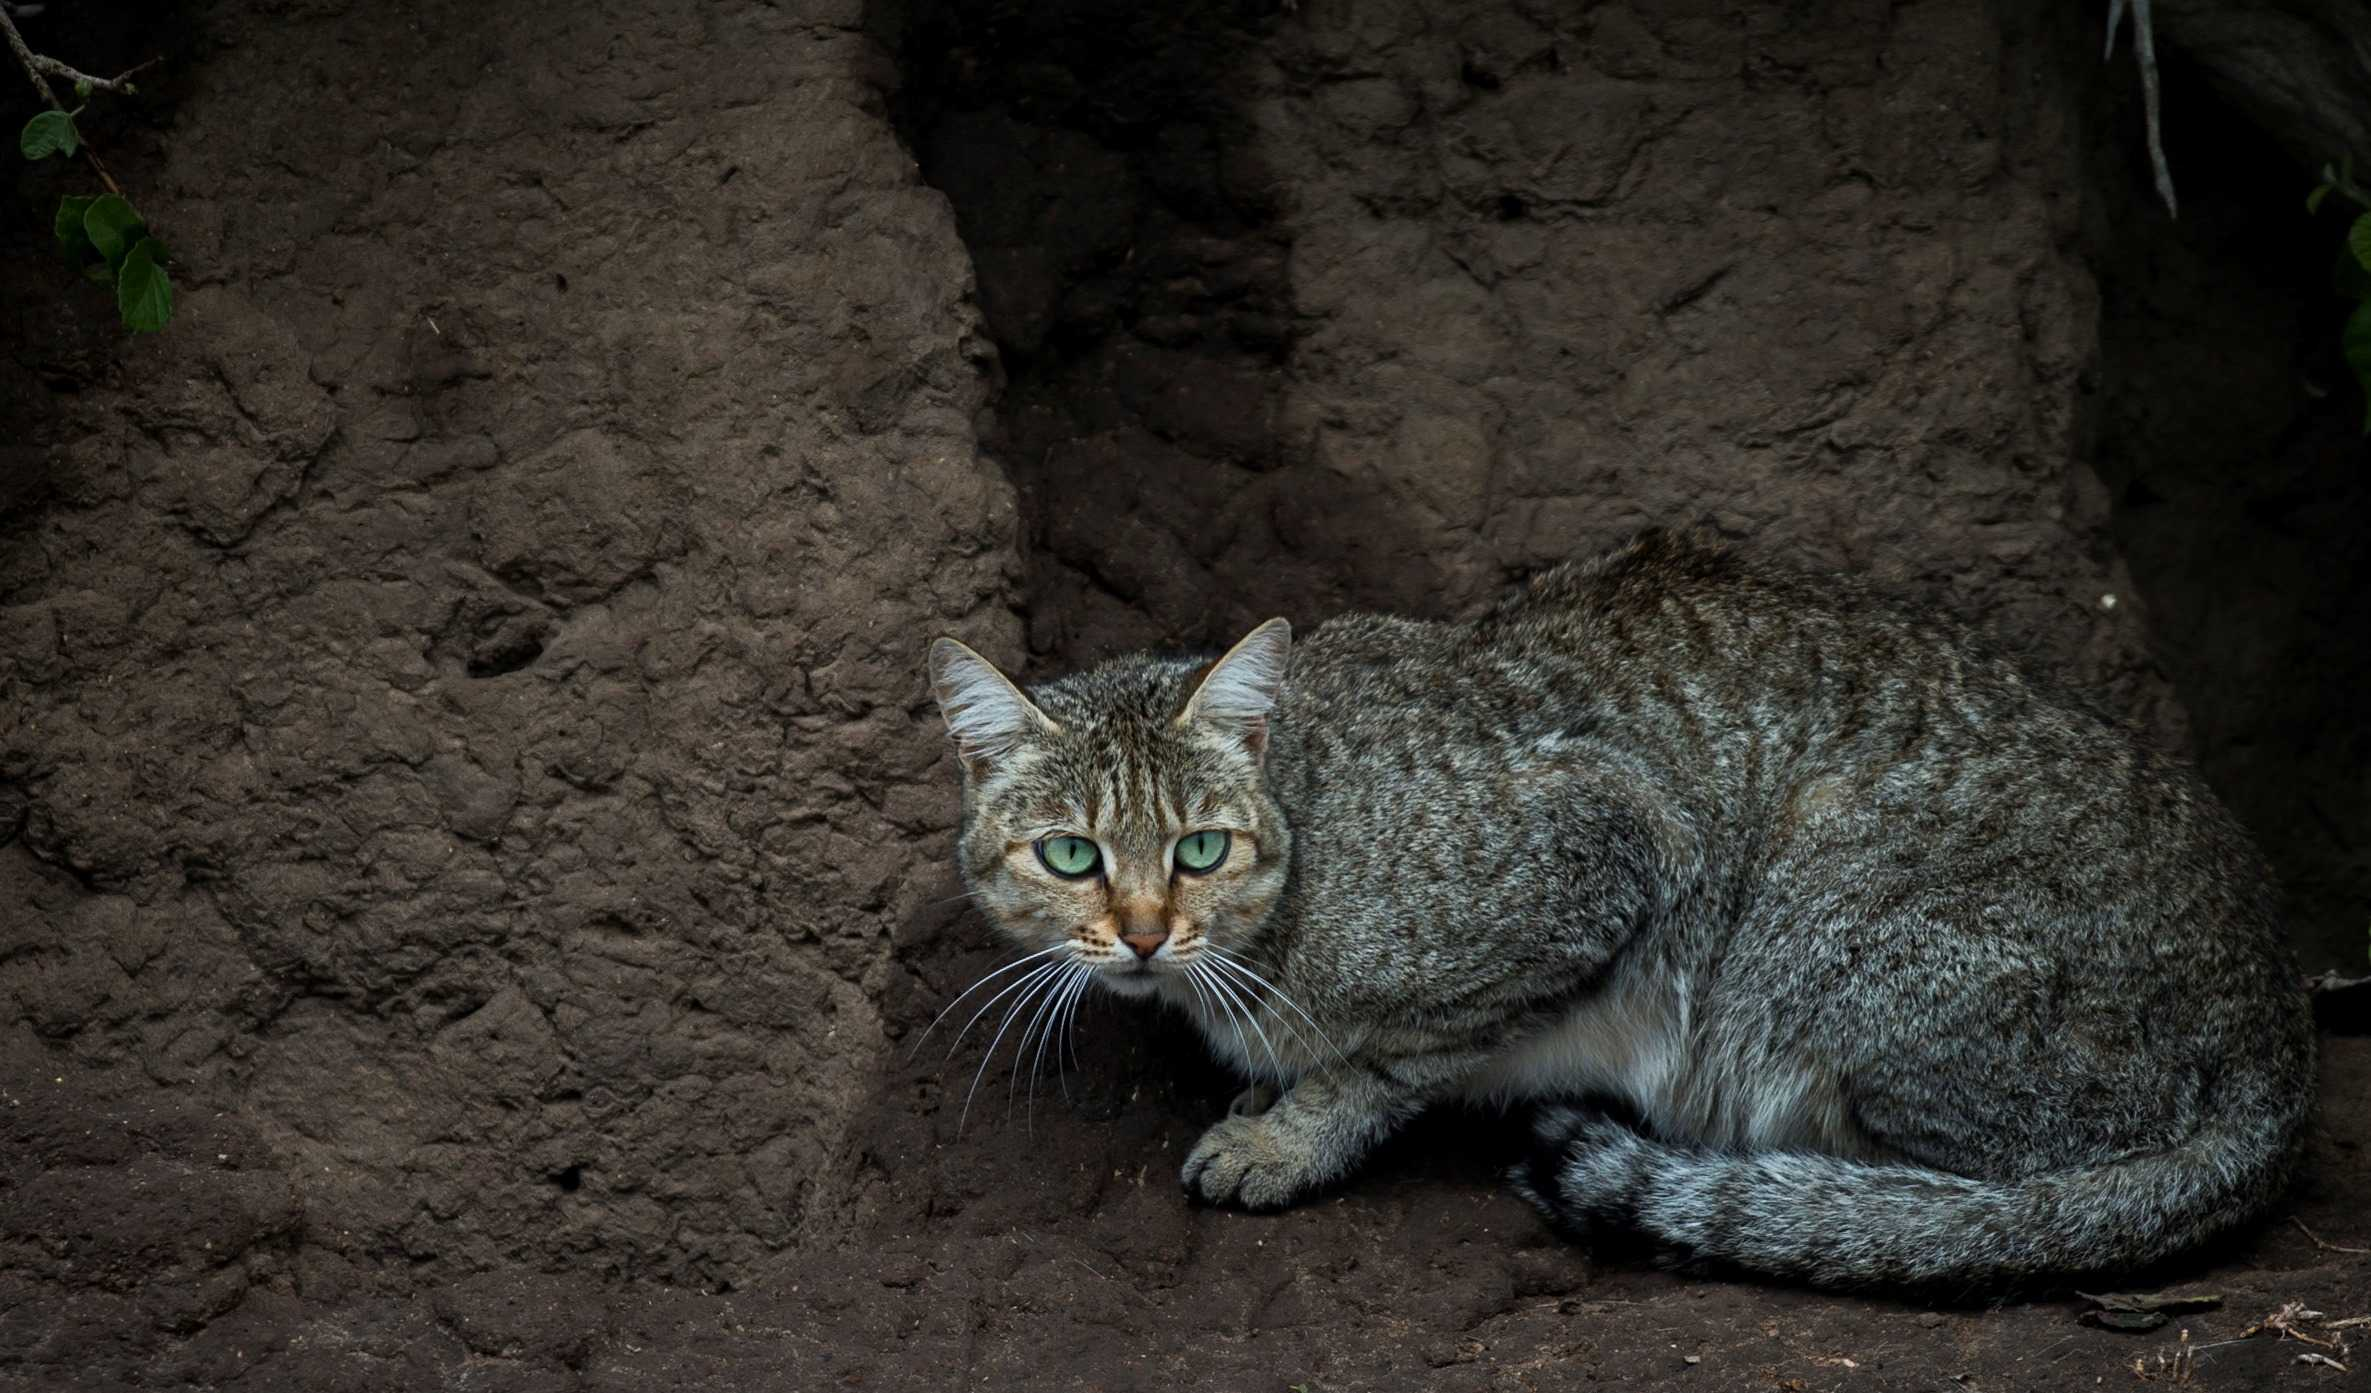 African Wild Cat in the Masai Mara, Kenya (Image by Paul Goldstein)